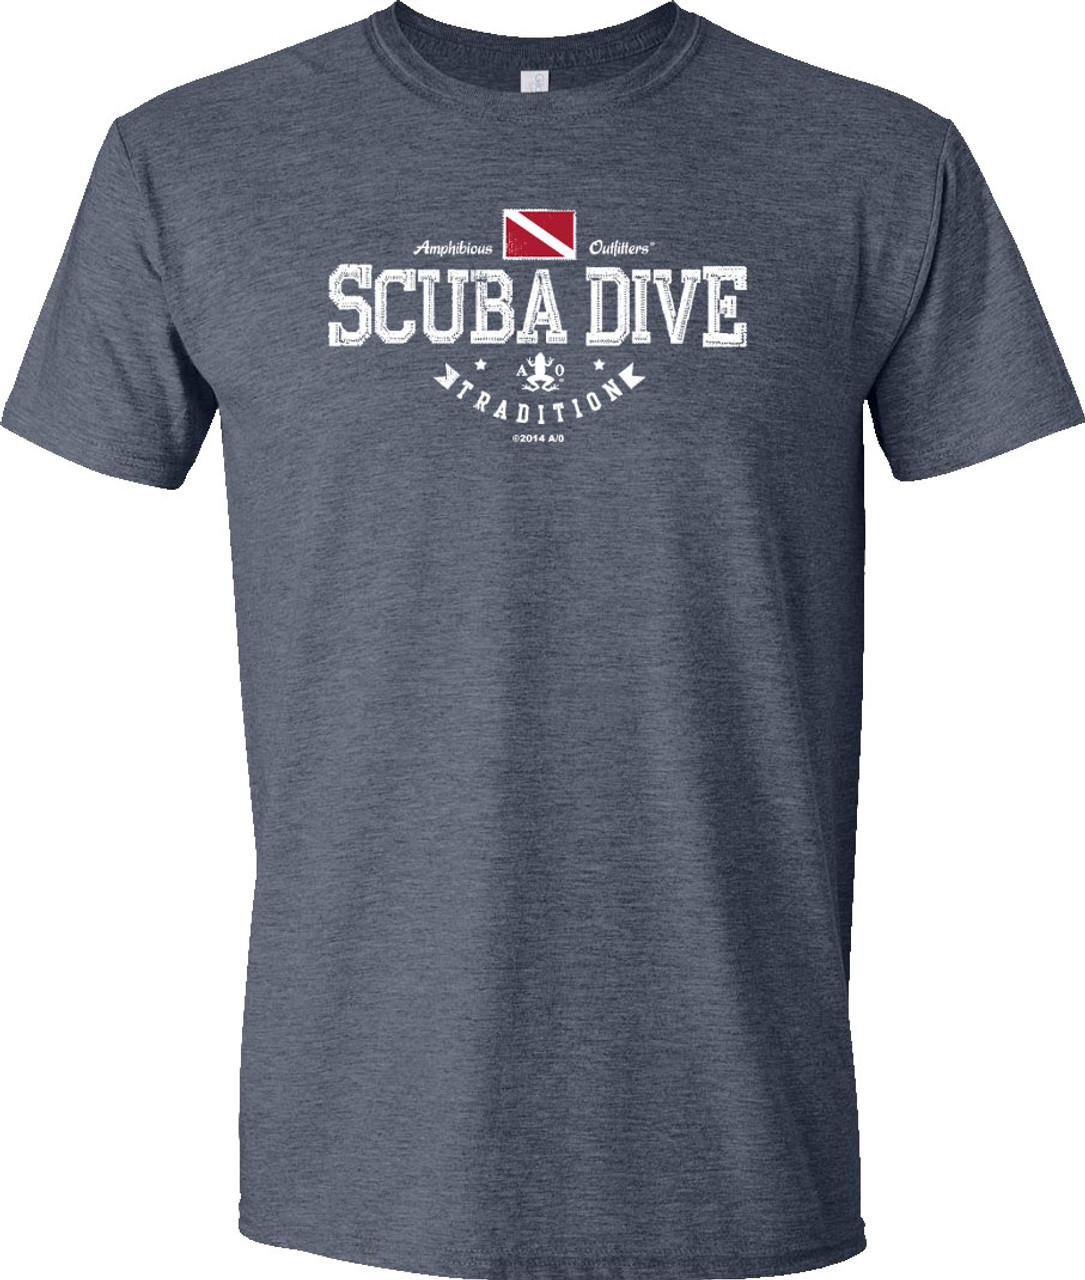 Amphibious Outfitters T-shirt - Scuba Traditions - Heather Navy